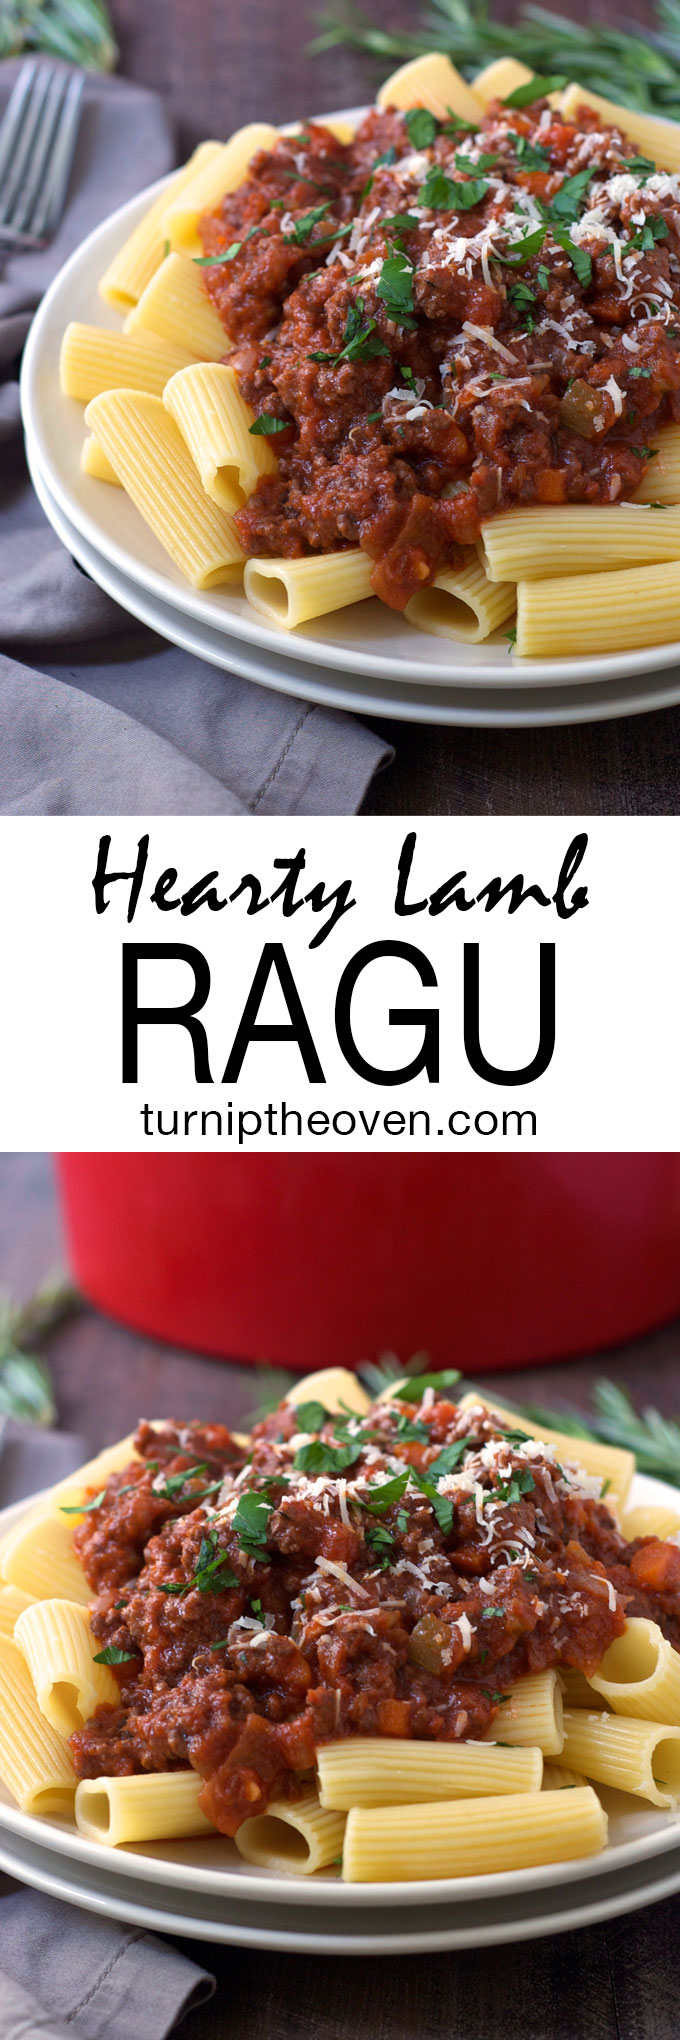 Lamb Ragu -- Put a new spin on traditional pasta sauce with this rich, hearty, soul-warming lamb ragu!